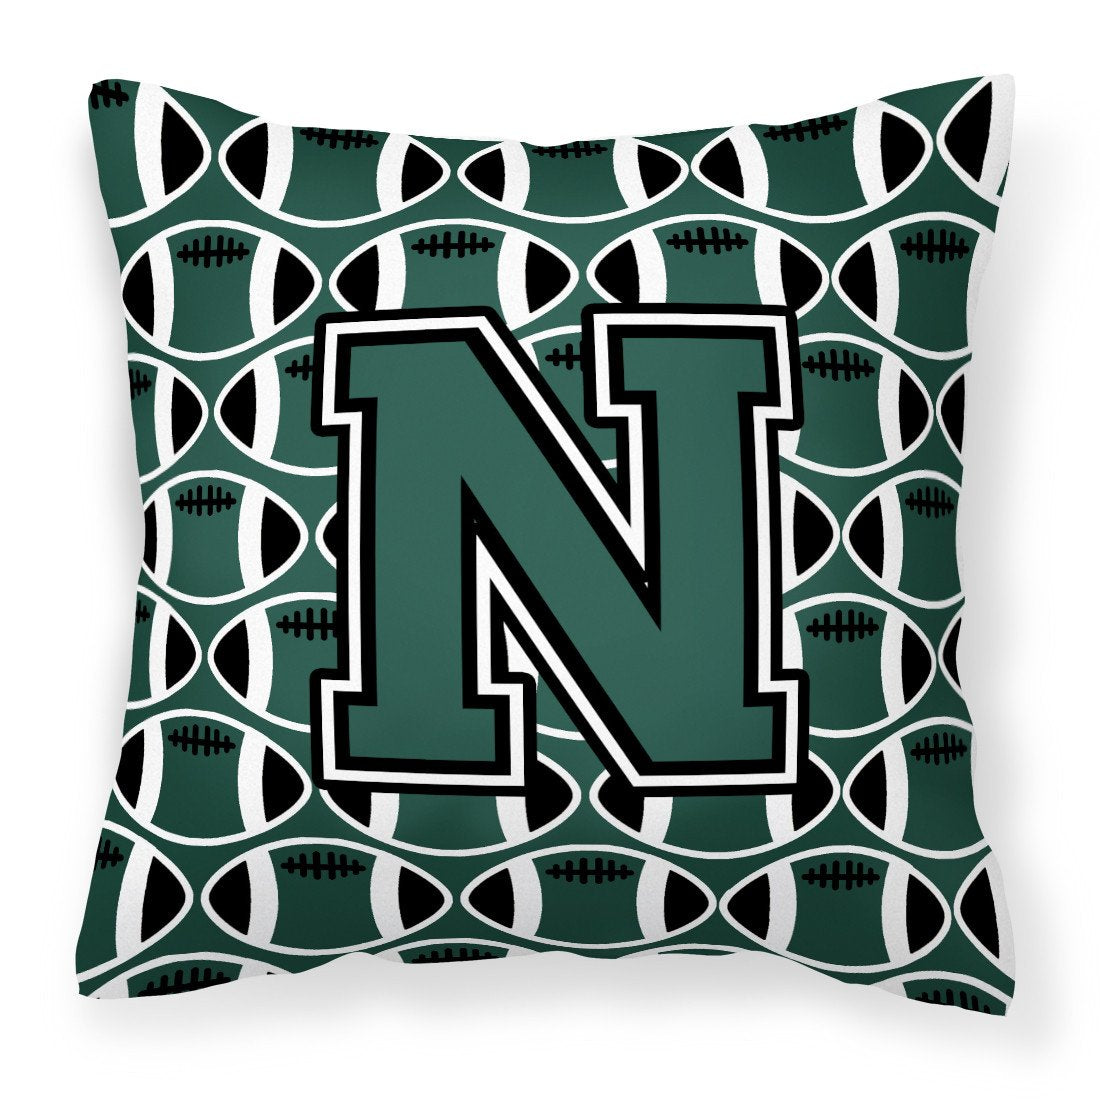 Letter N Football Green and White Fabric Decorative Pillow CJ1071-NPW1414 by Caroline's Treasures